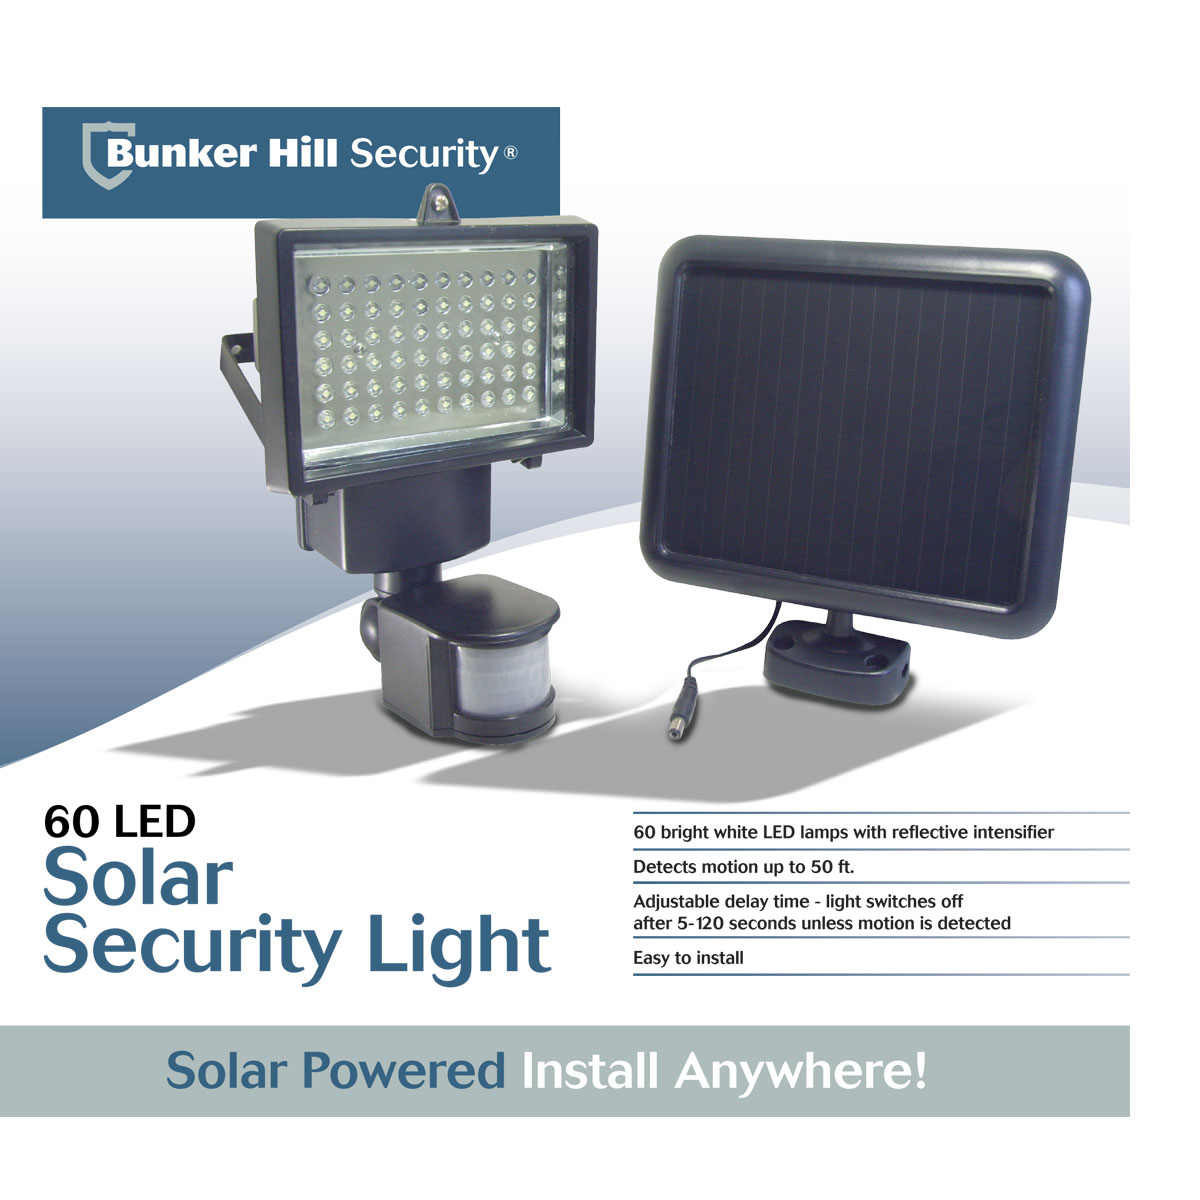 60 led solar security light workwithnaturefo